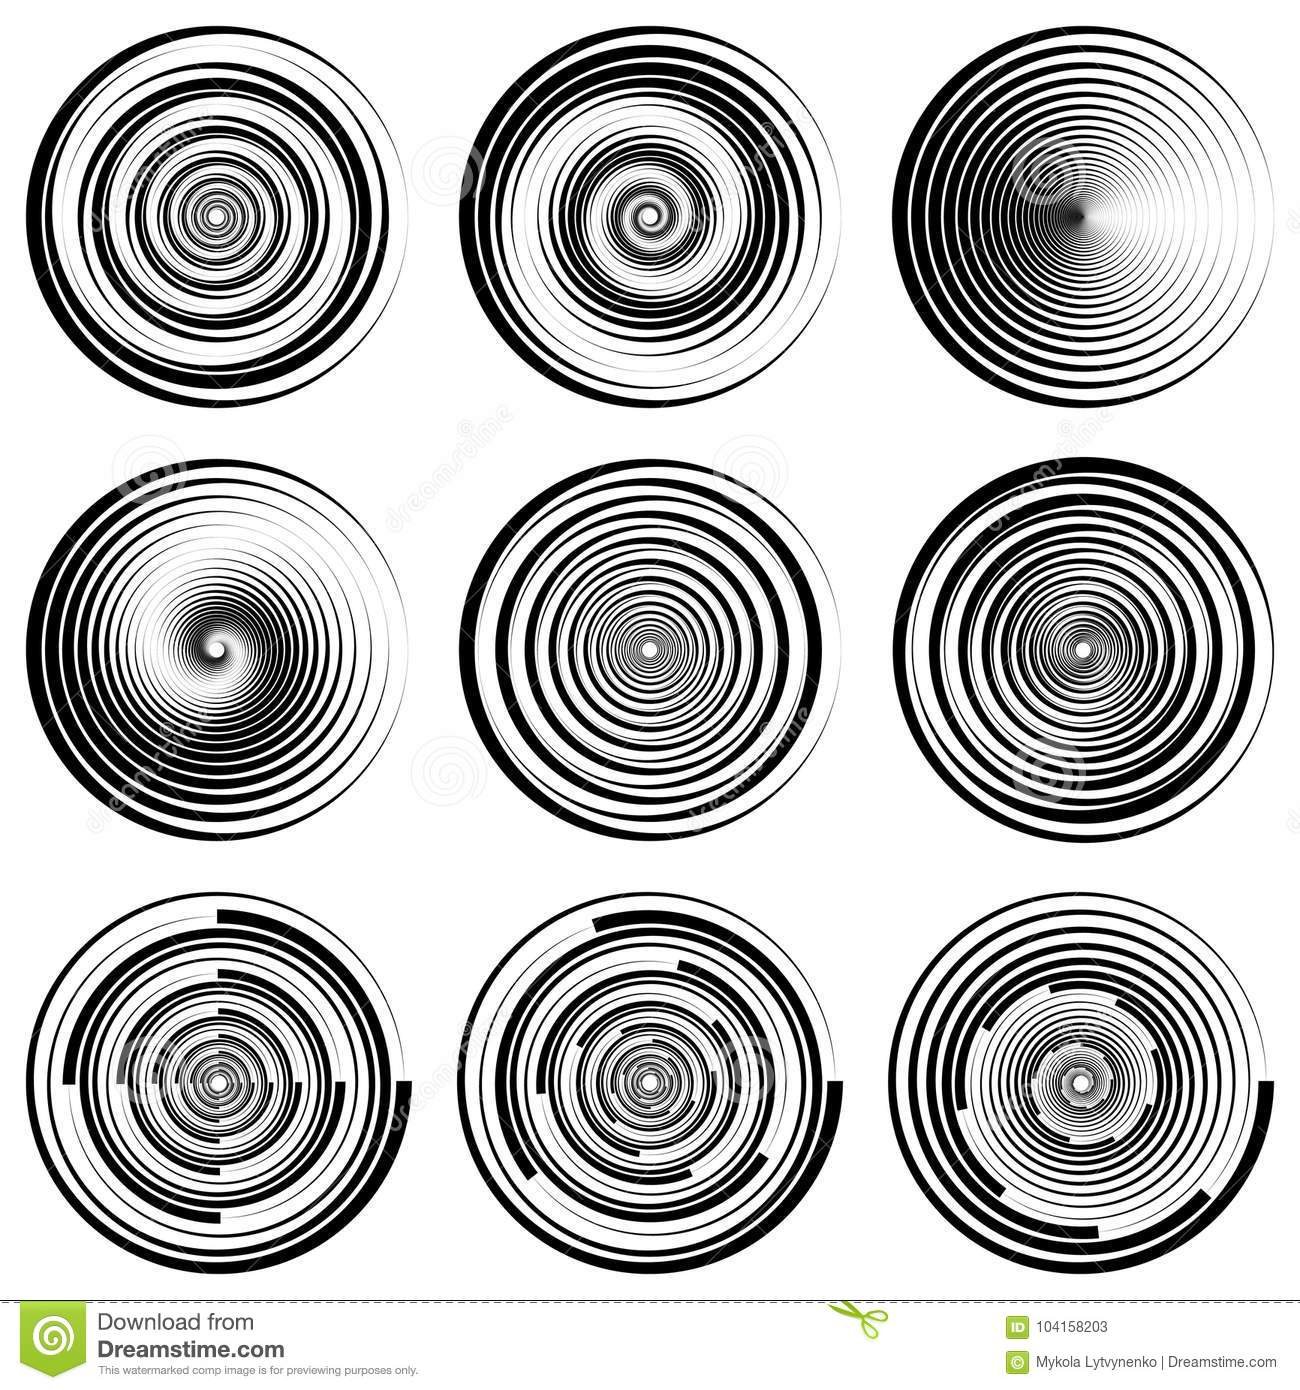 Set Round Spiral Circle Filigree Watermark, Vector EPS Dynamic